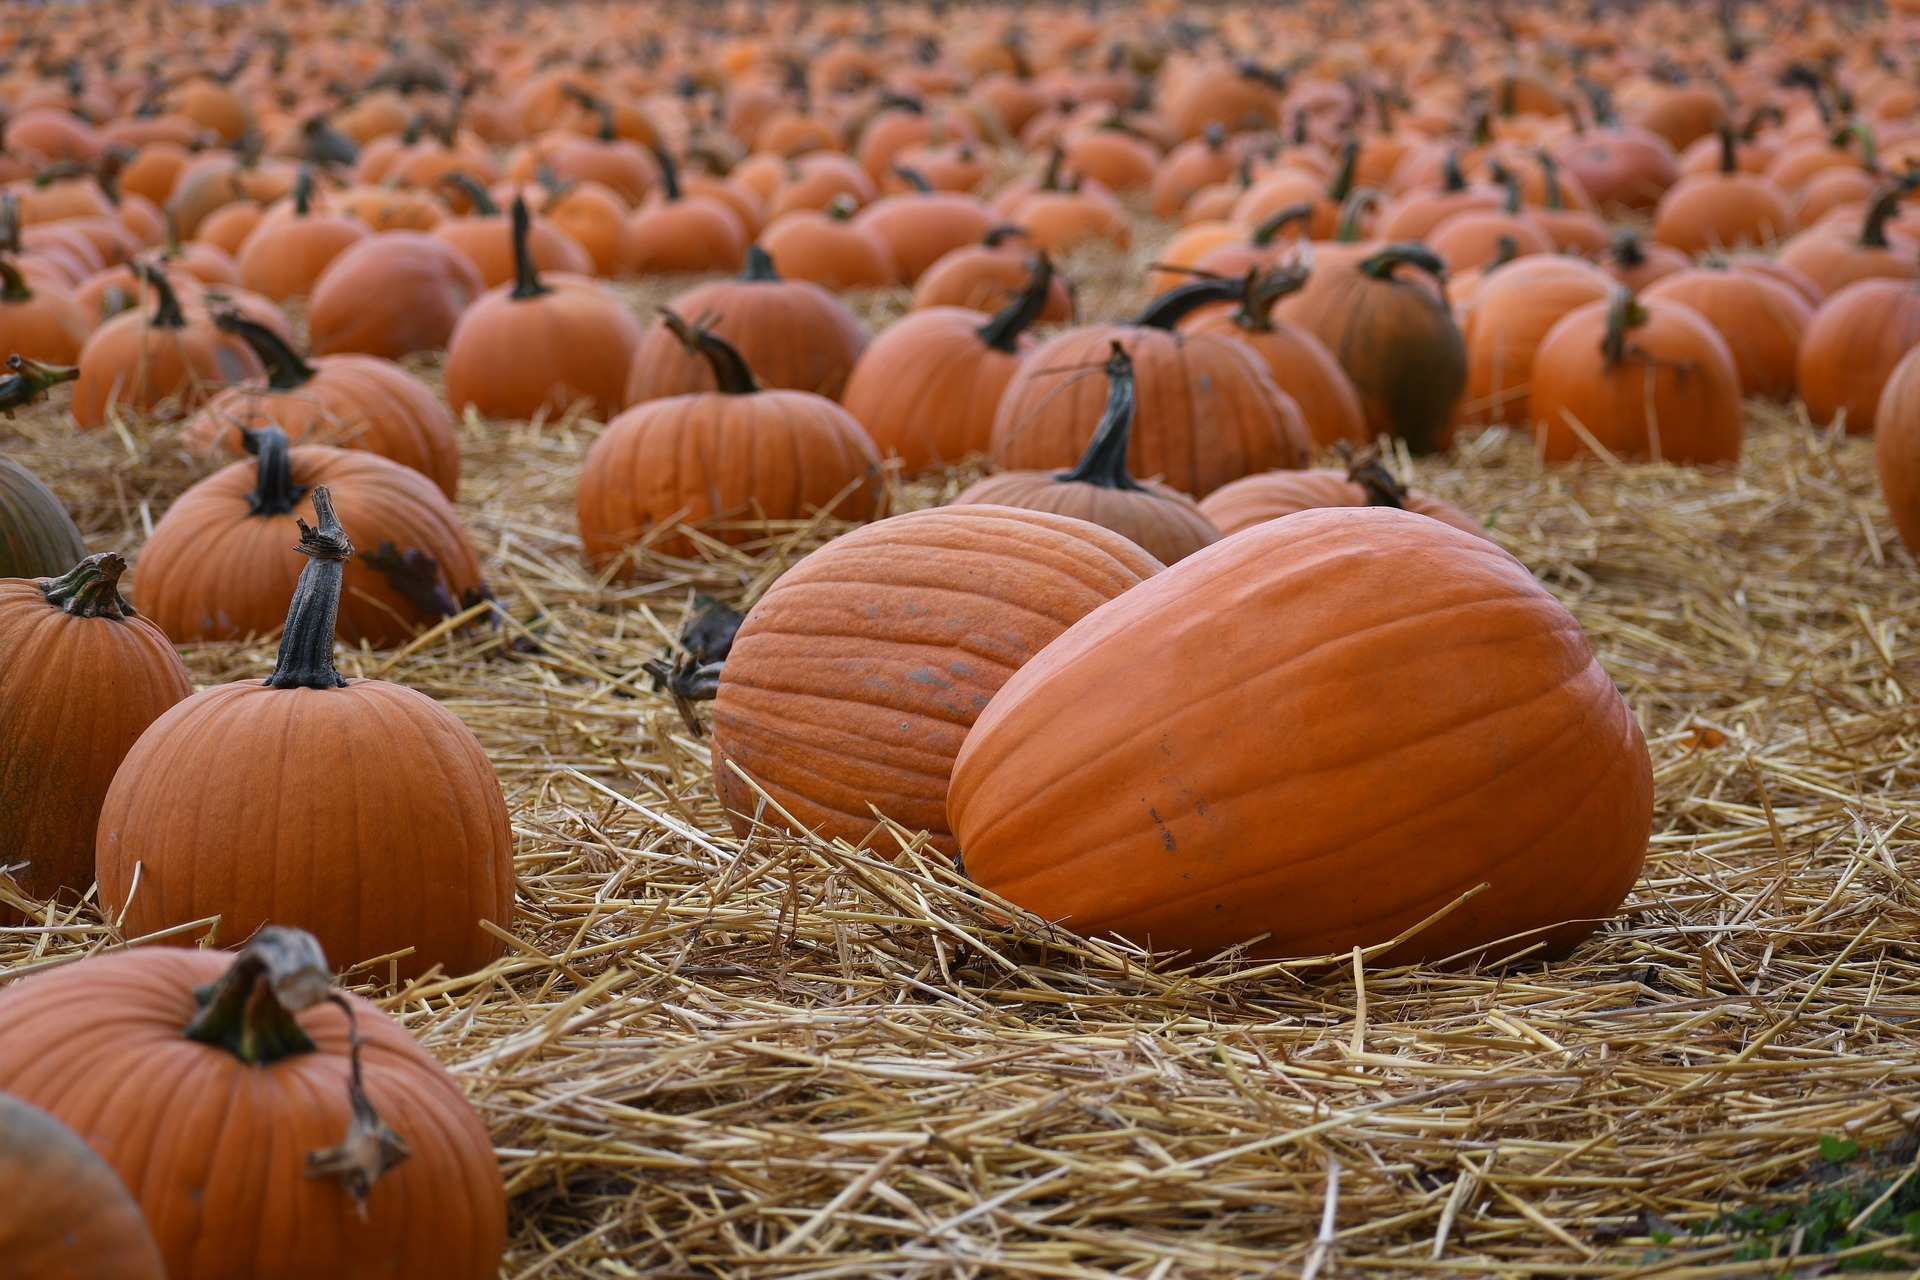 Image of a Pumpkin Patch